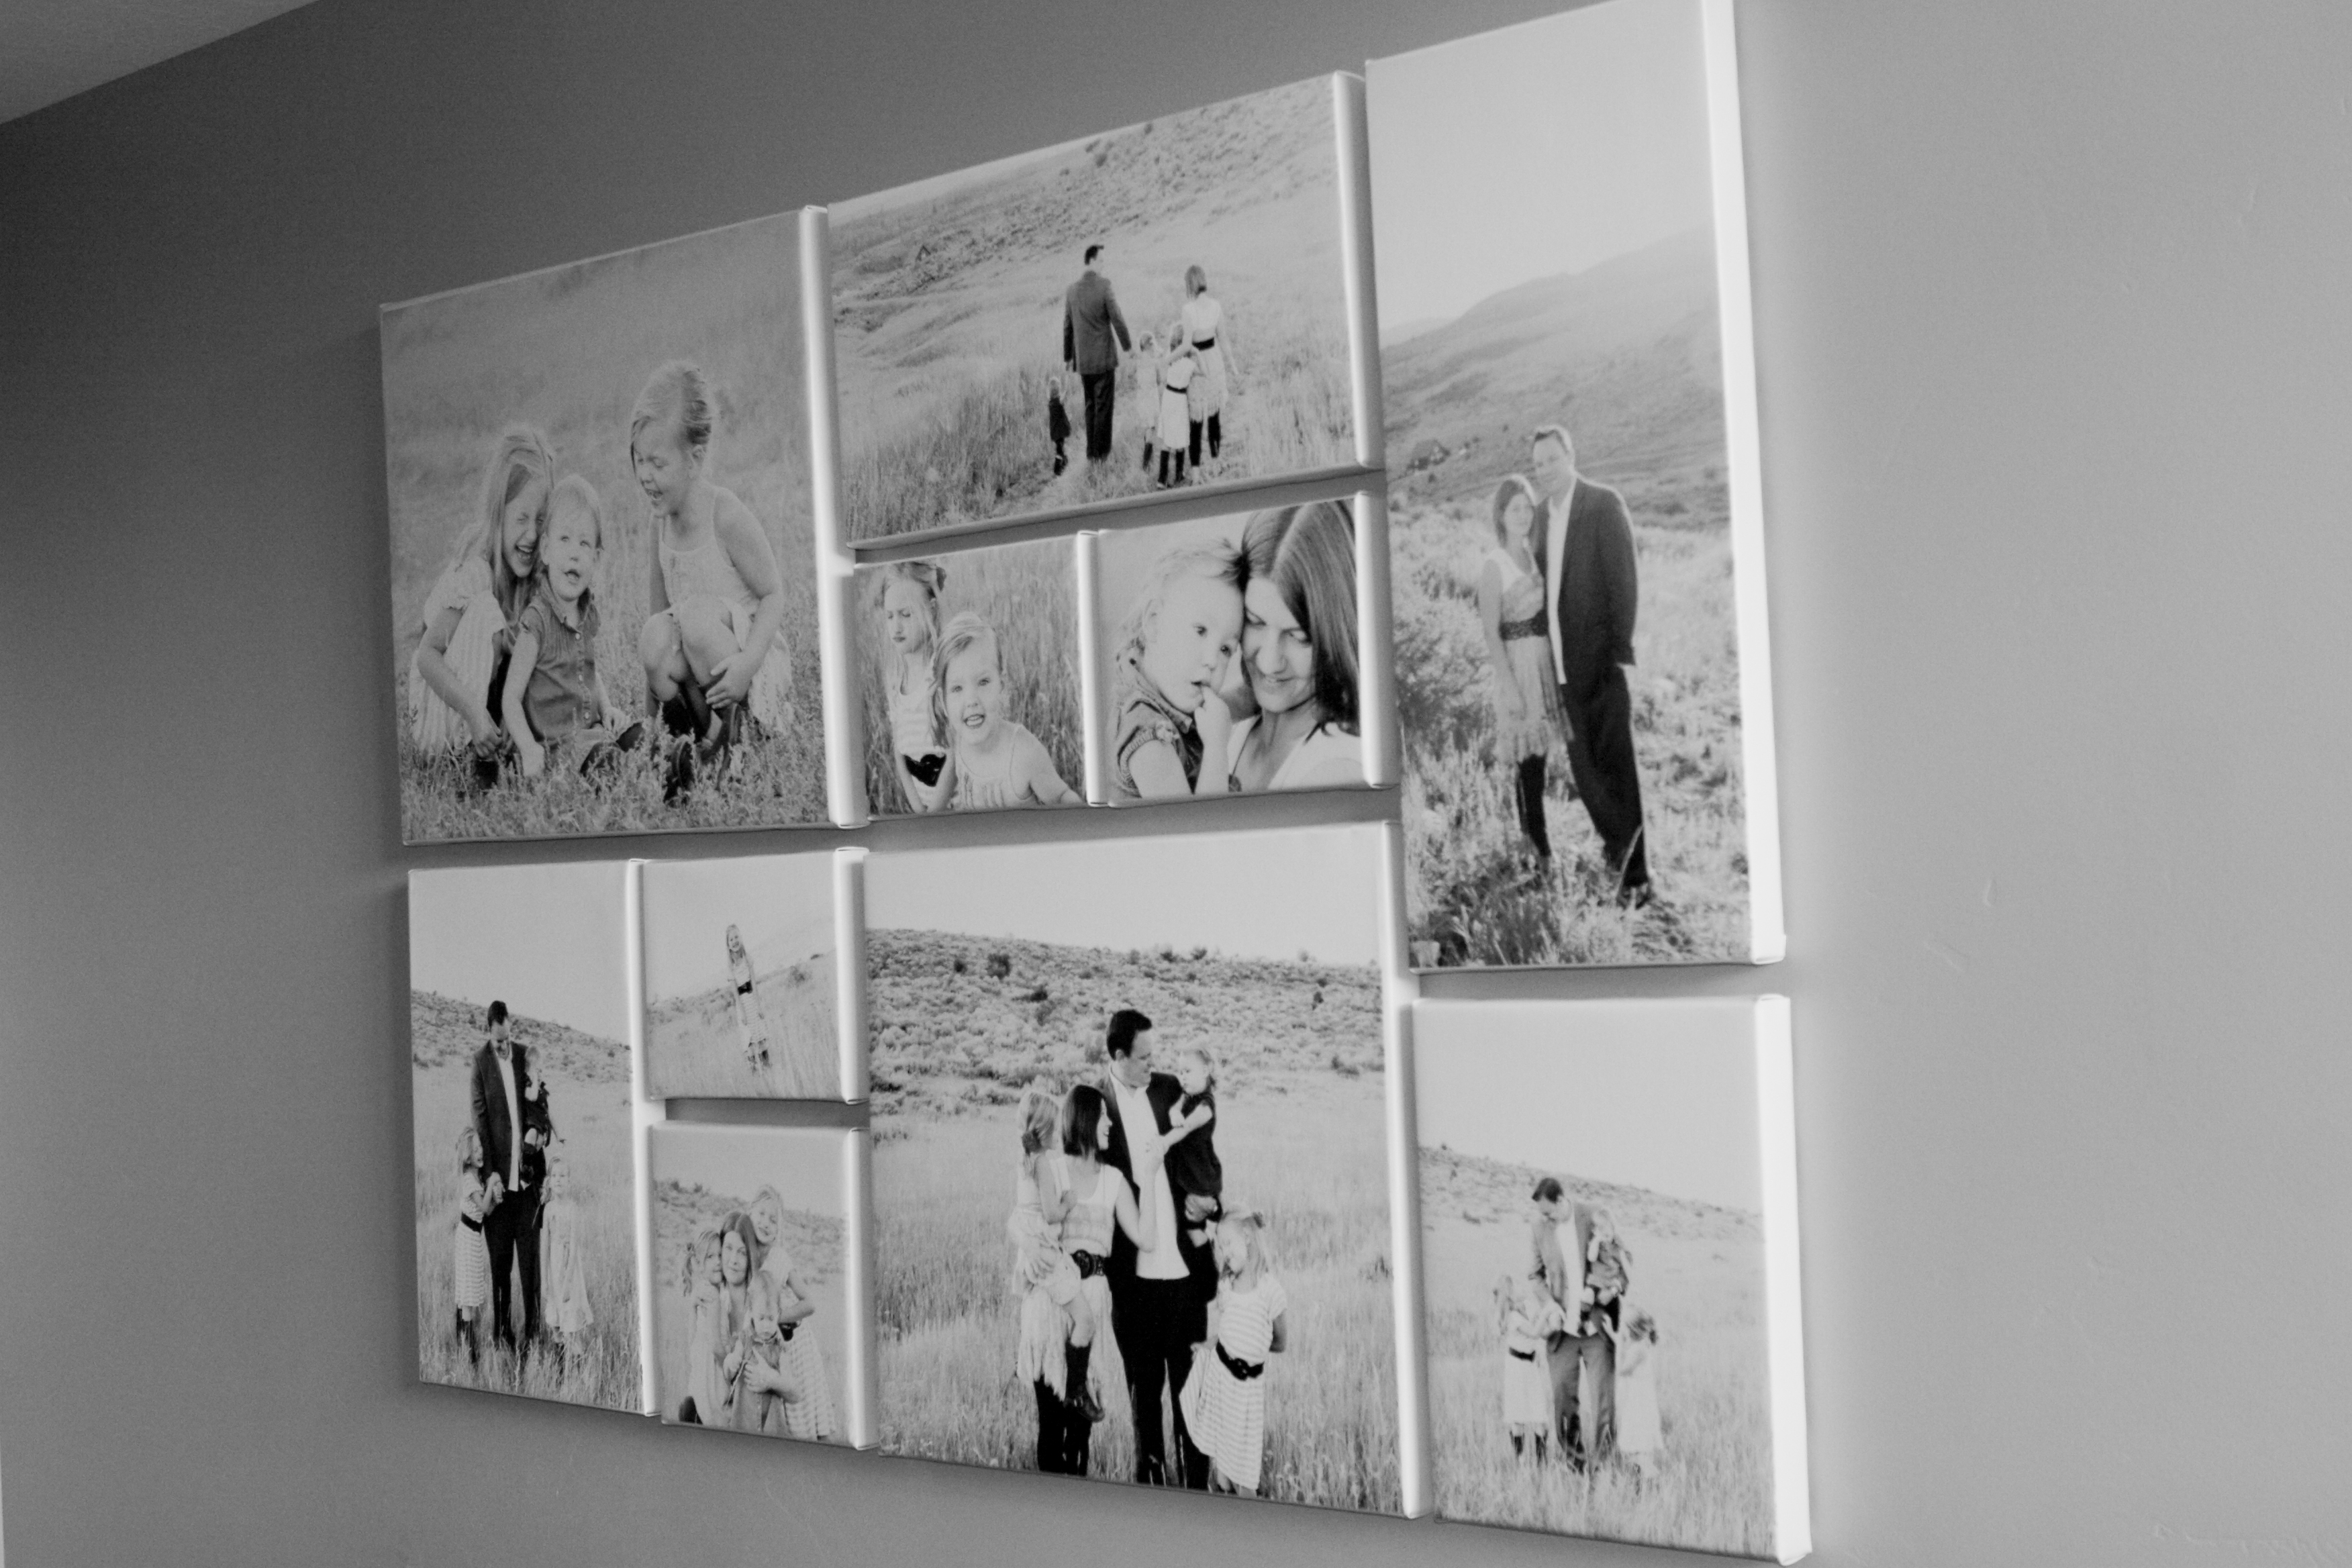 Project…canvas Wall | Wall Collage, Photo Wall And Collage Within Current Photography Canvas Wall Art (View 5 of 15)